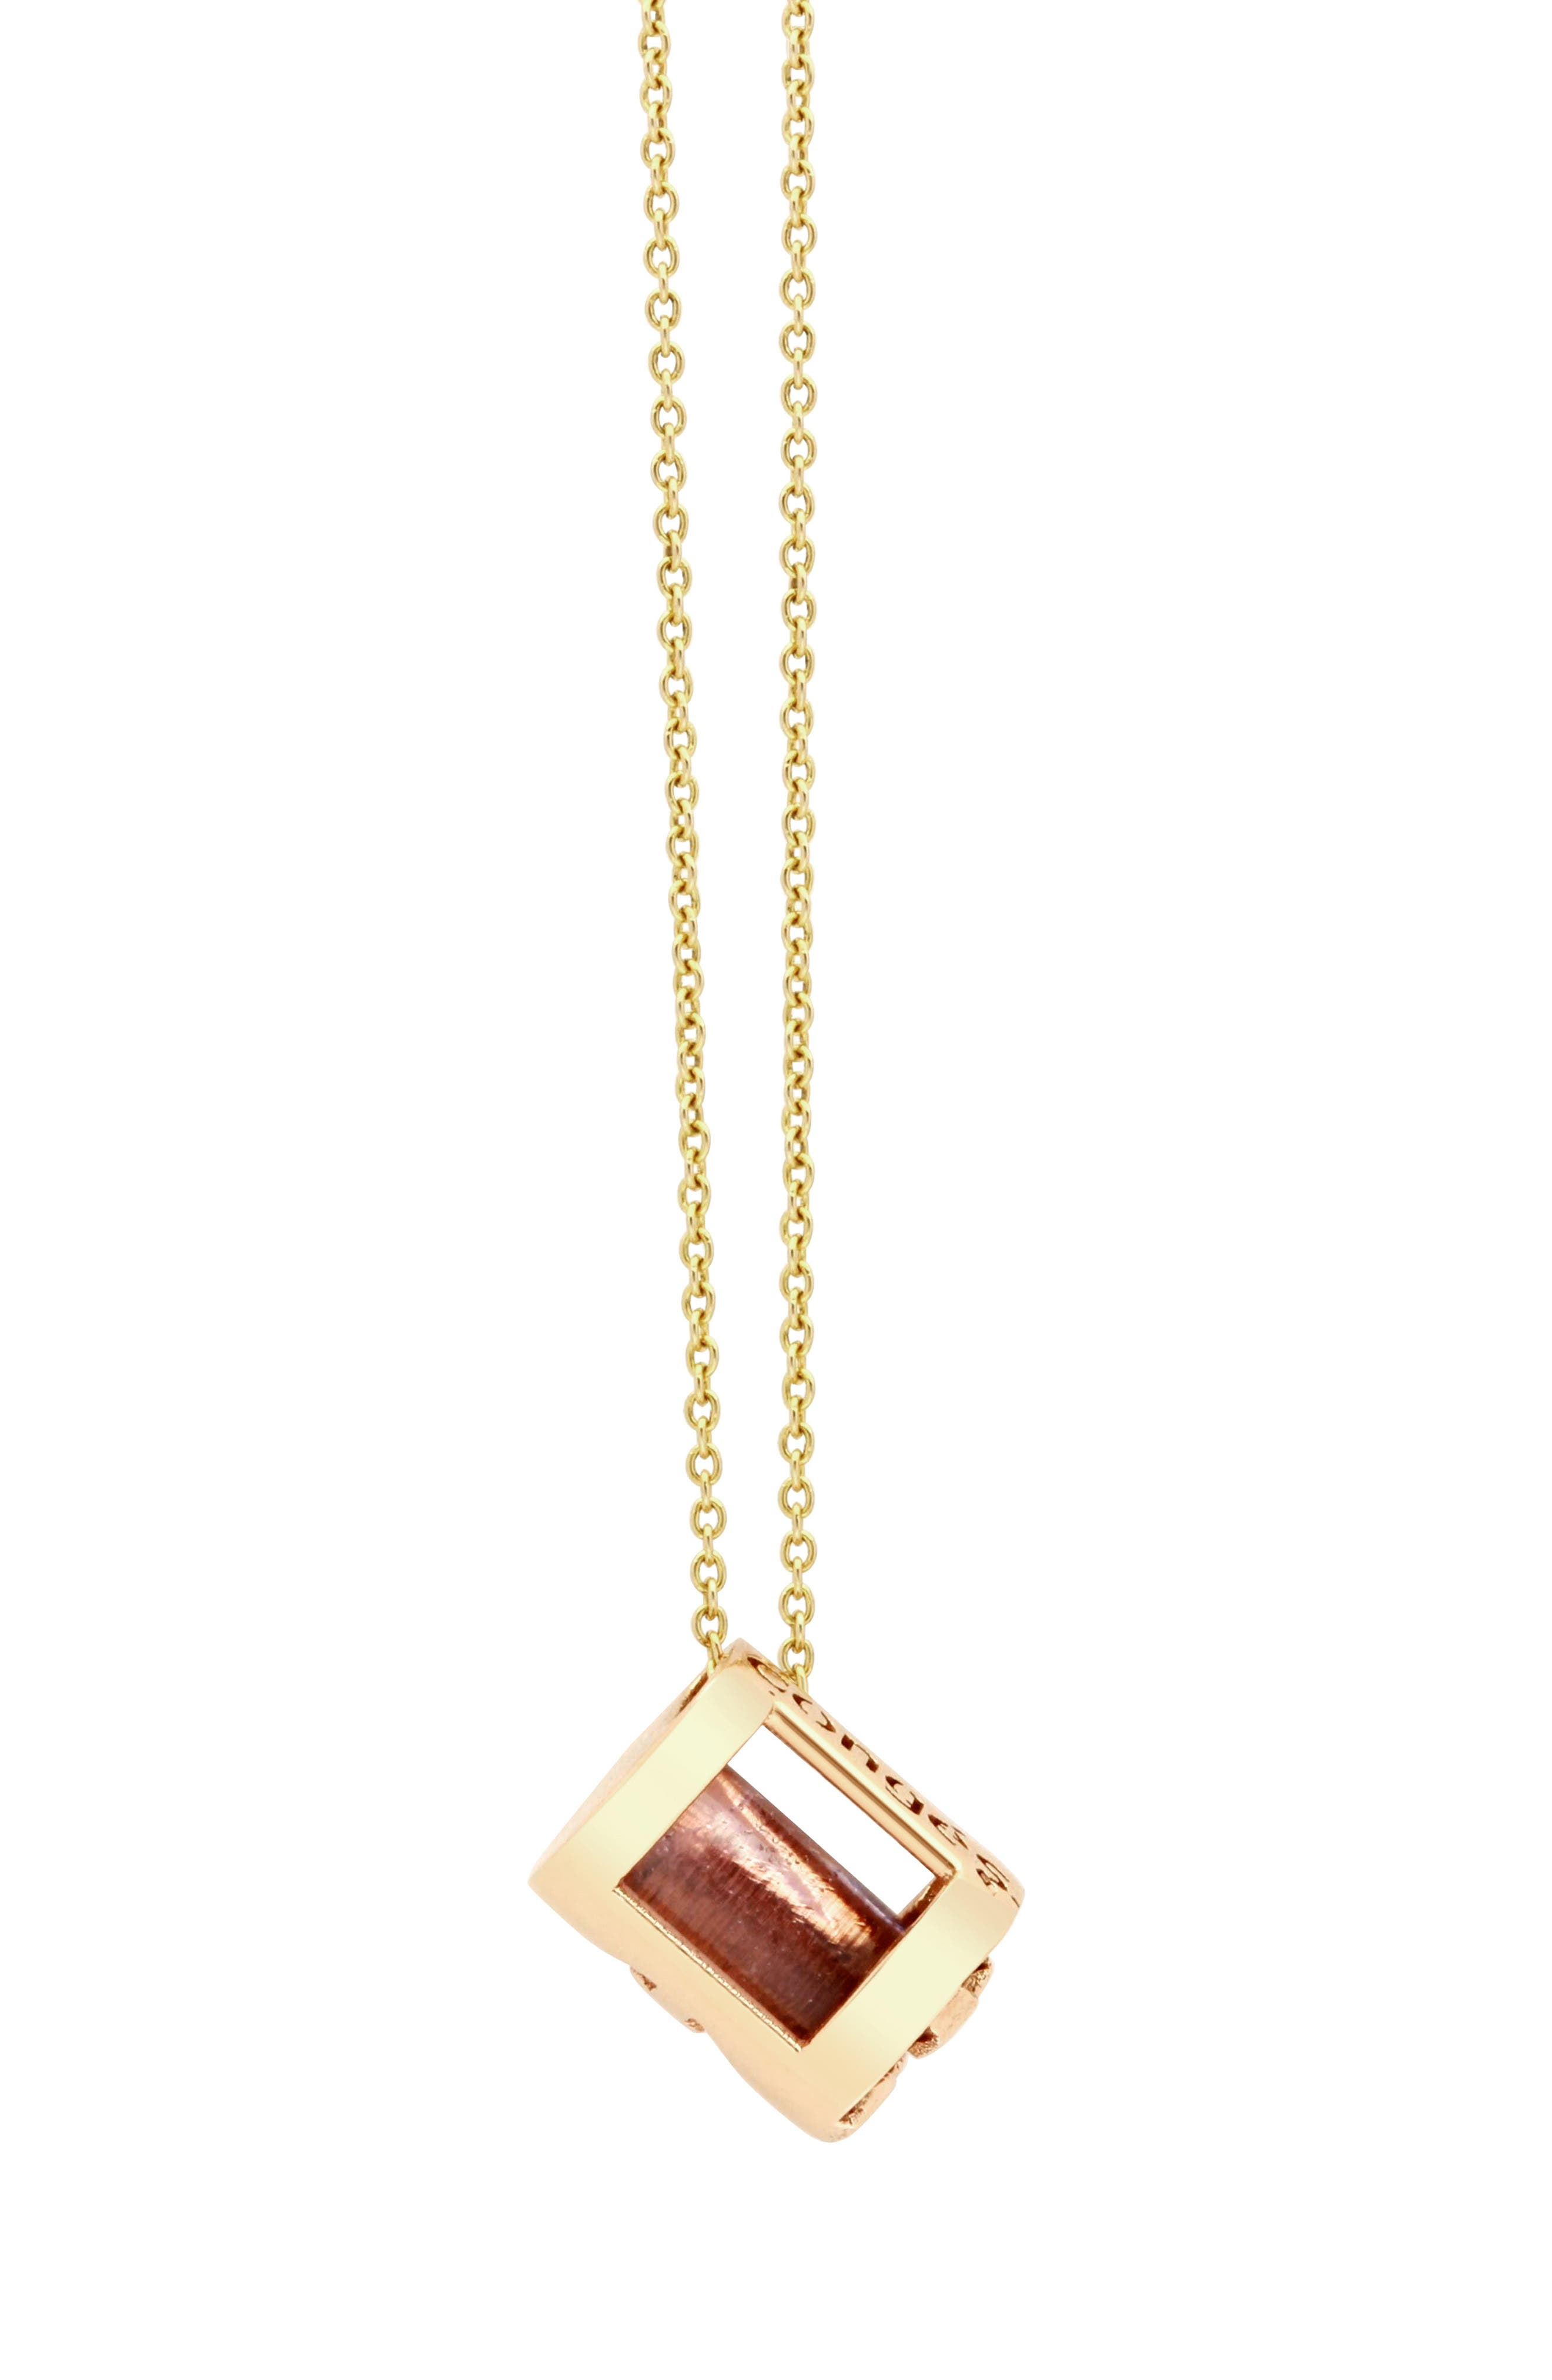 Bring Serenity Amethyst Initial Barrel Pendant Necklace,                             Main thumbnail 1, color,                             YELLOW GOLD-A